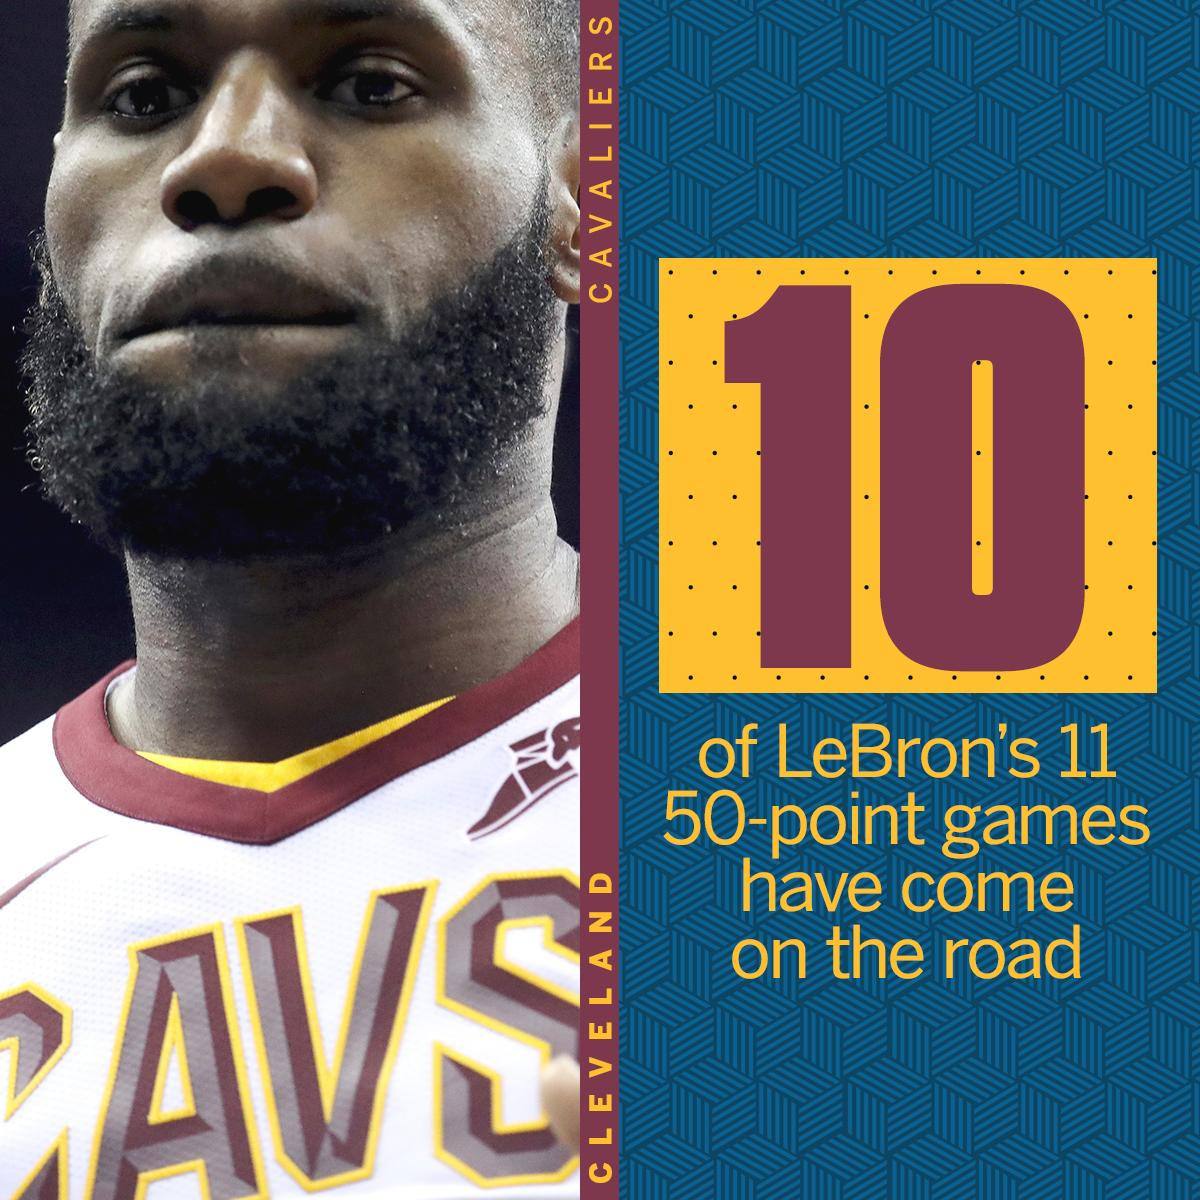 LeBron prefers to drop 50 in your house. https://t.co/bARCfCeQXm